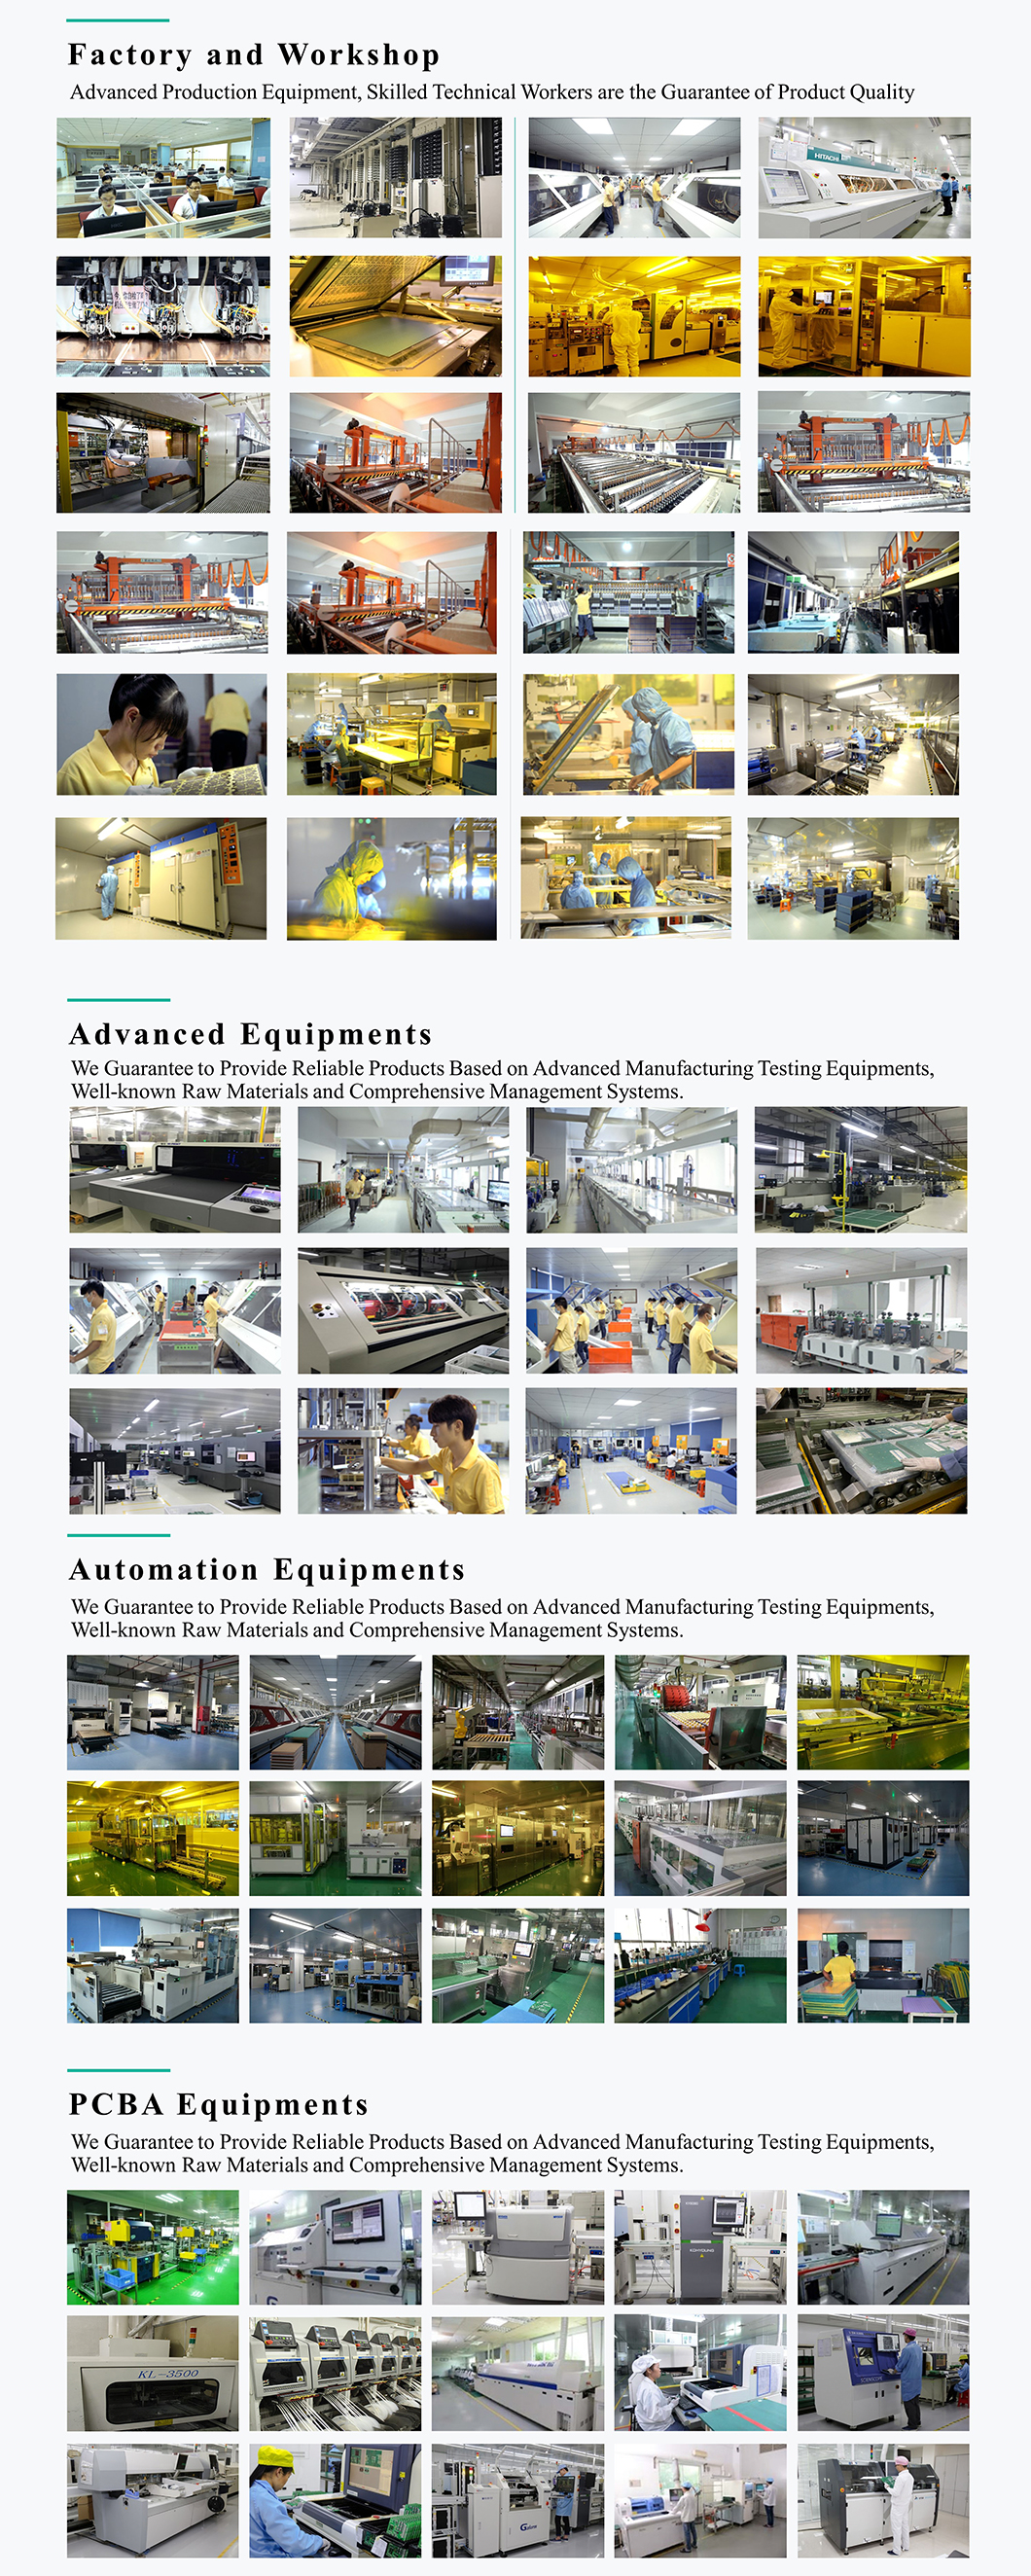 Advanced Production Equipment, Skilled Technical Workers are the Guarantee of Product Quality